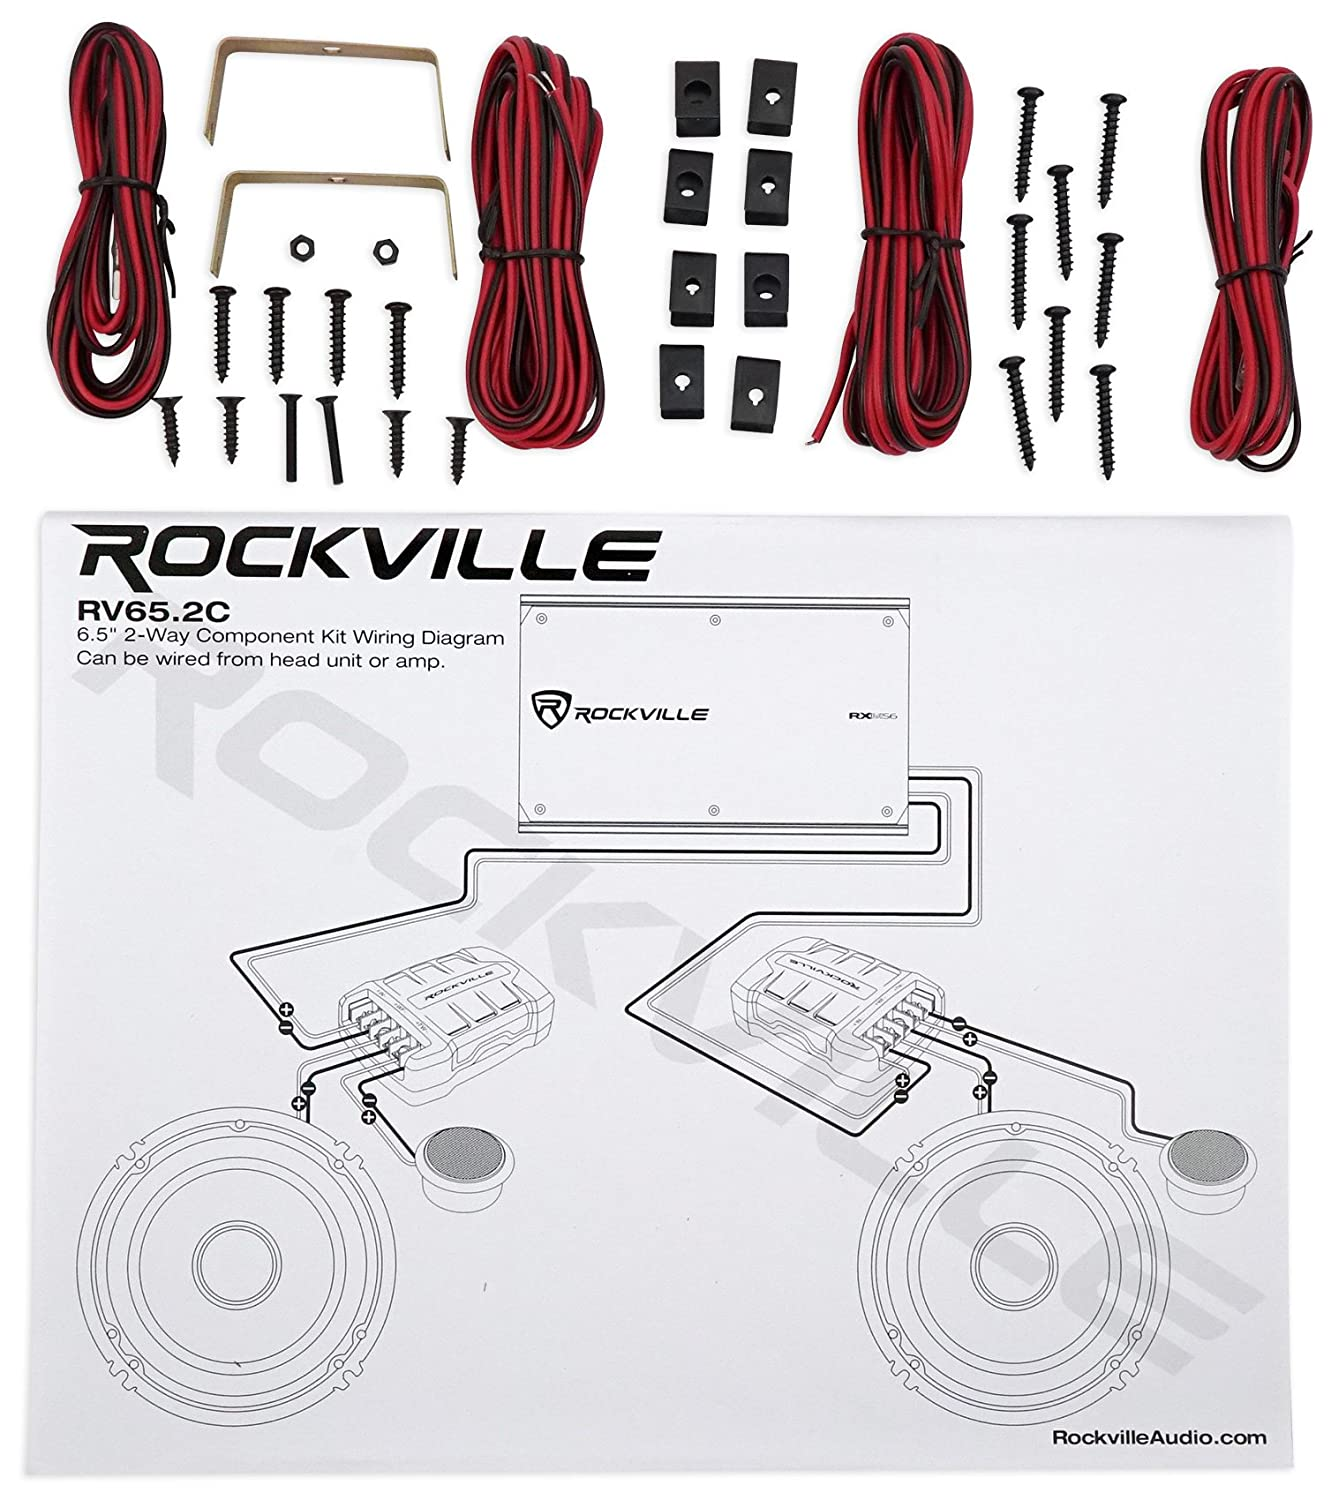 Pair Rockville Rv652c 65 Component Speakers Coaxial 2 Way Speaker Wiring Diagram 4 Ch Amplifier Wires Car Electronics